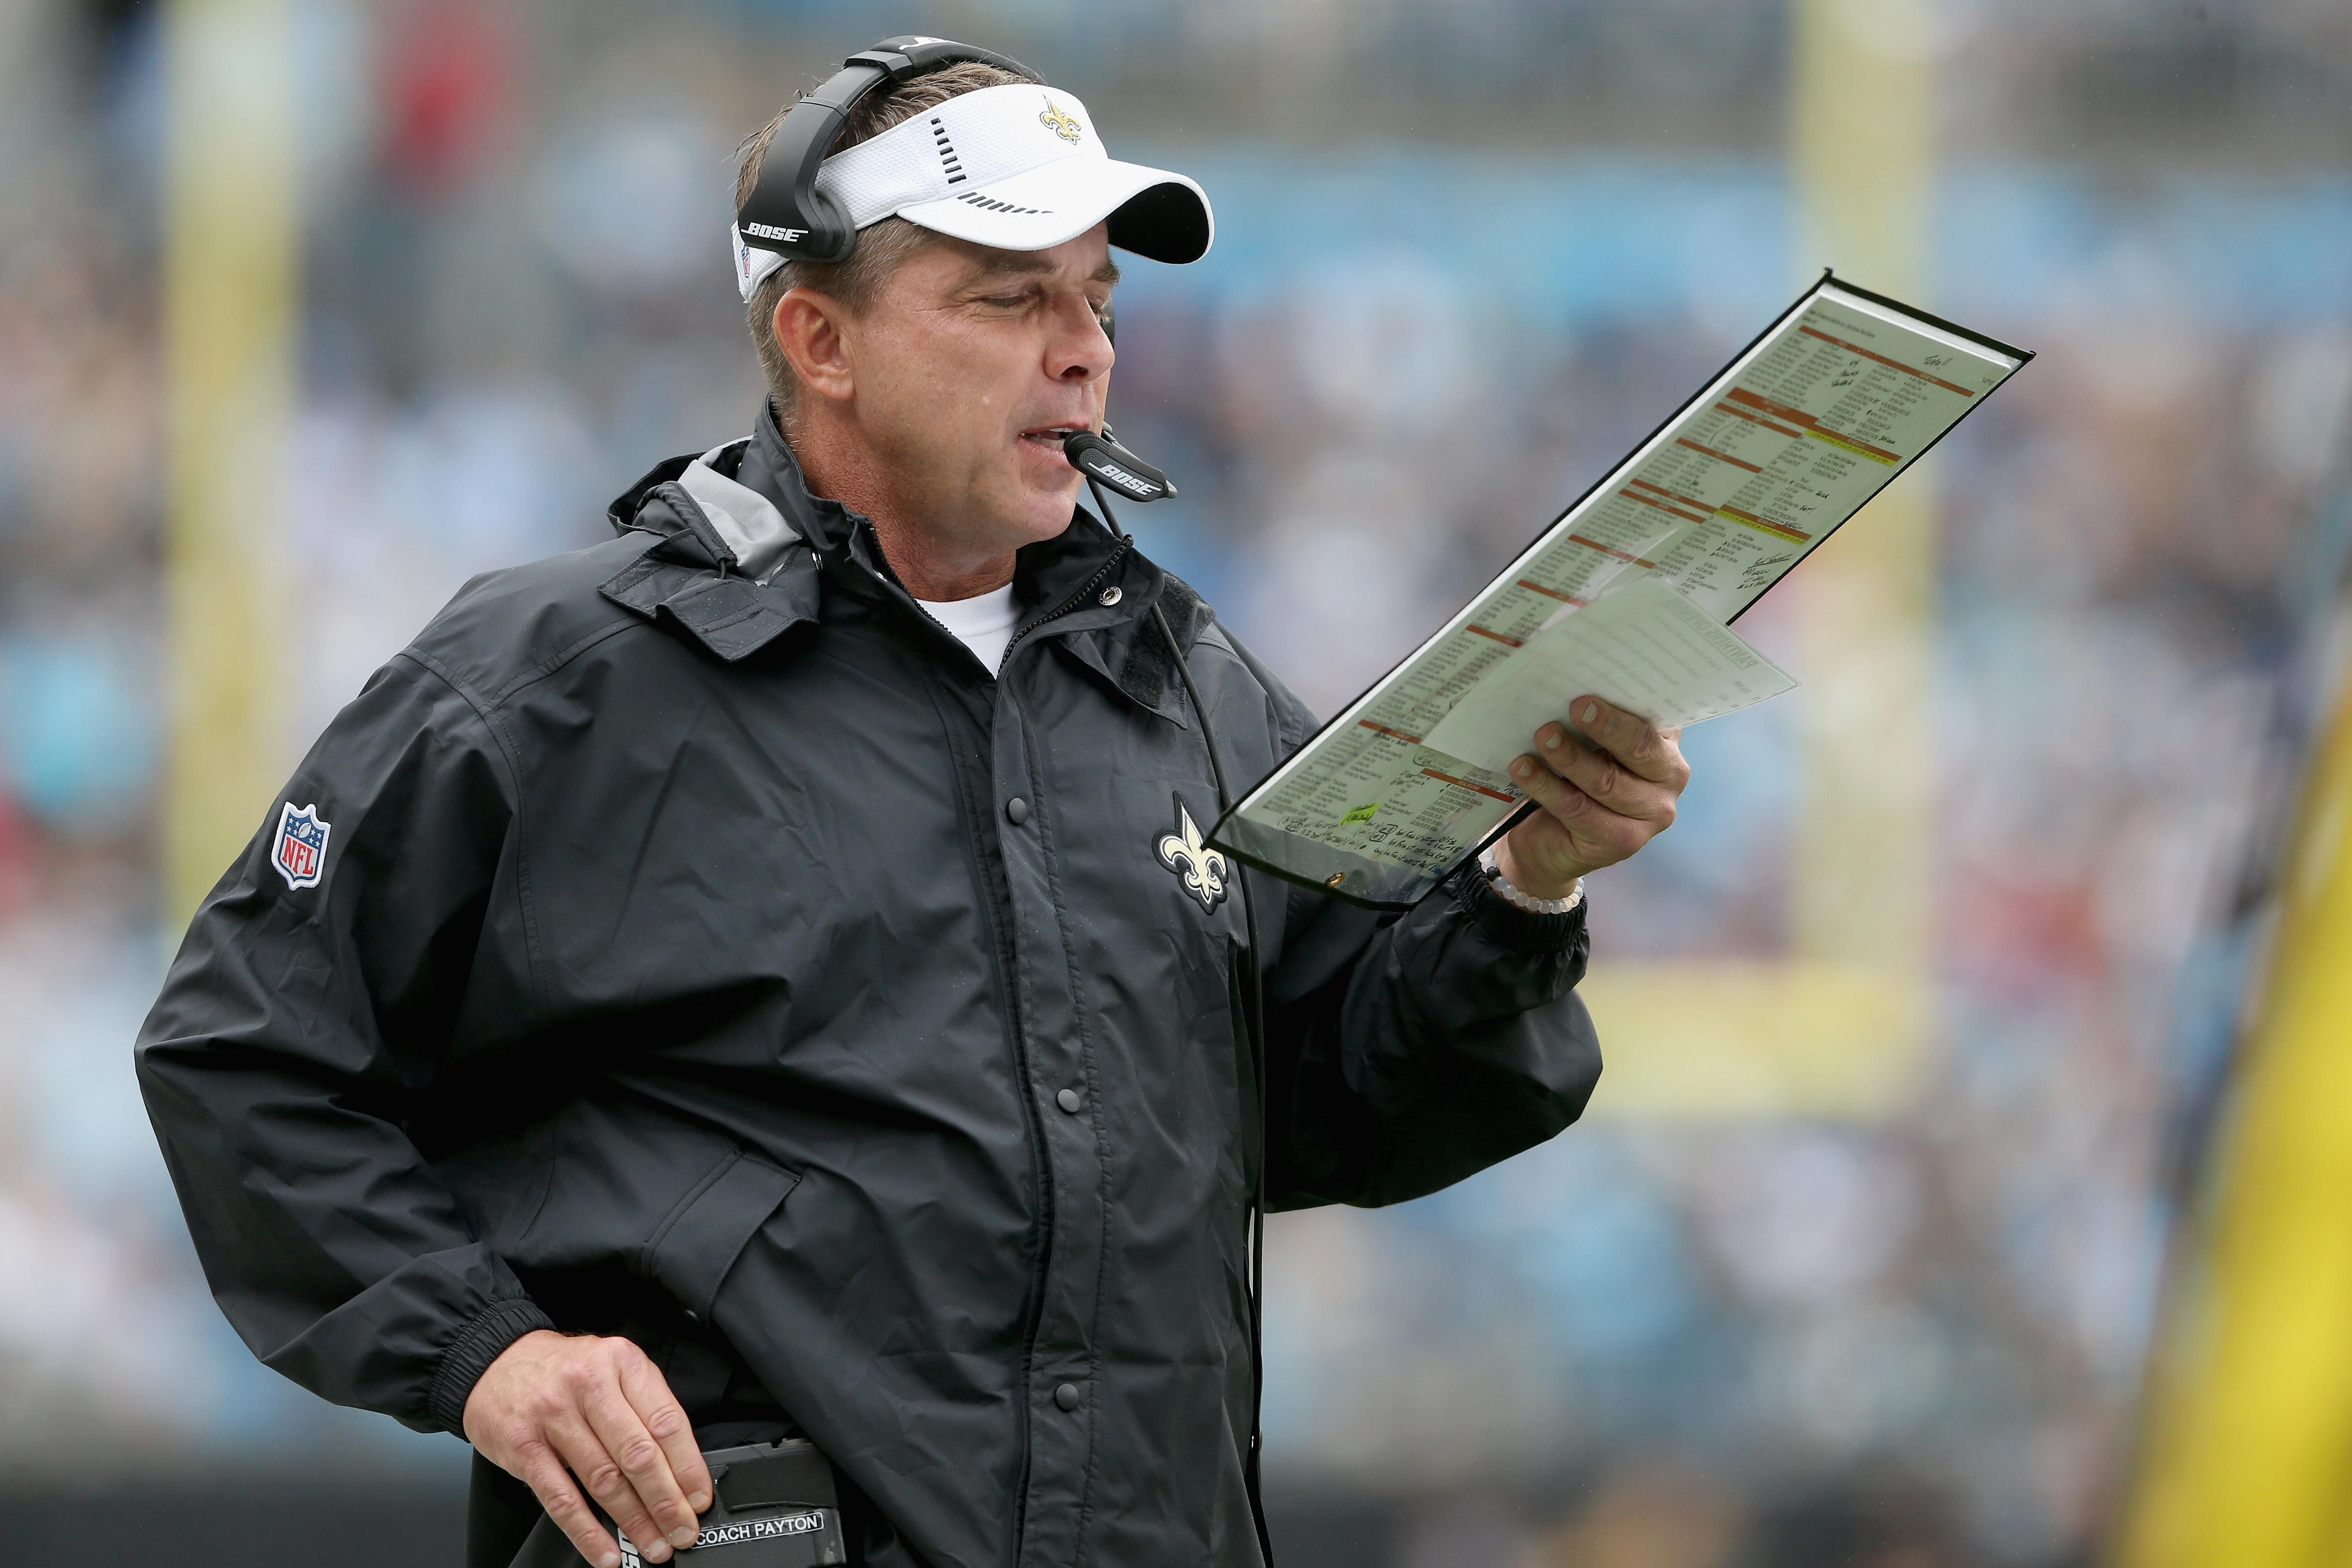 The hottest trade target in the NFL after the season could be Saints coach Sean Payton